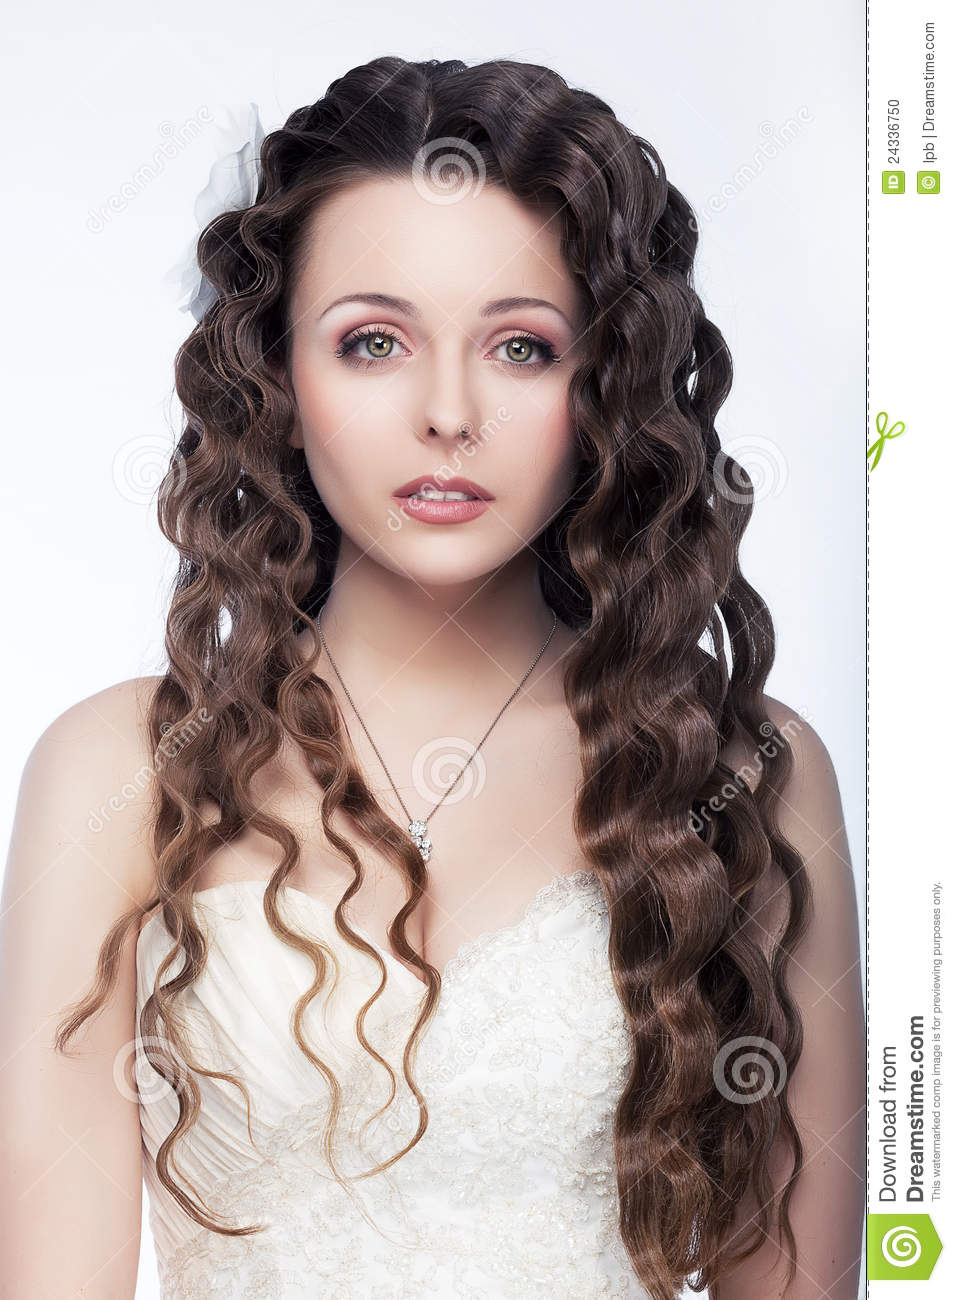 Cute Brunette Young Girl With Curly Hair Stock Photo